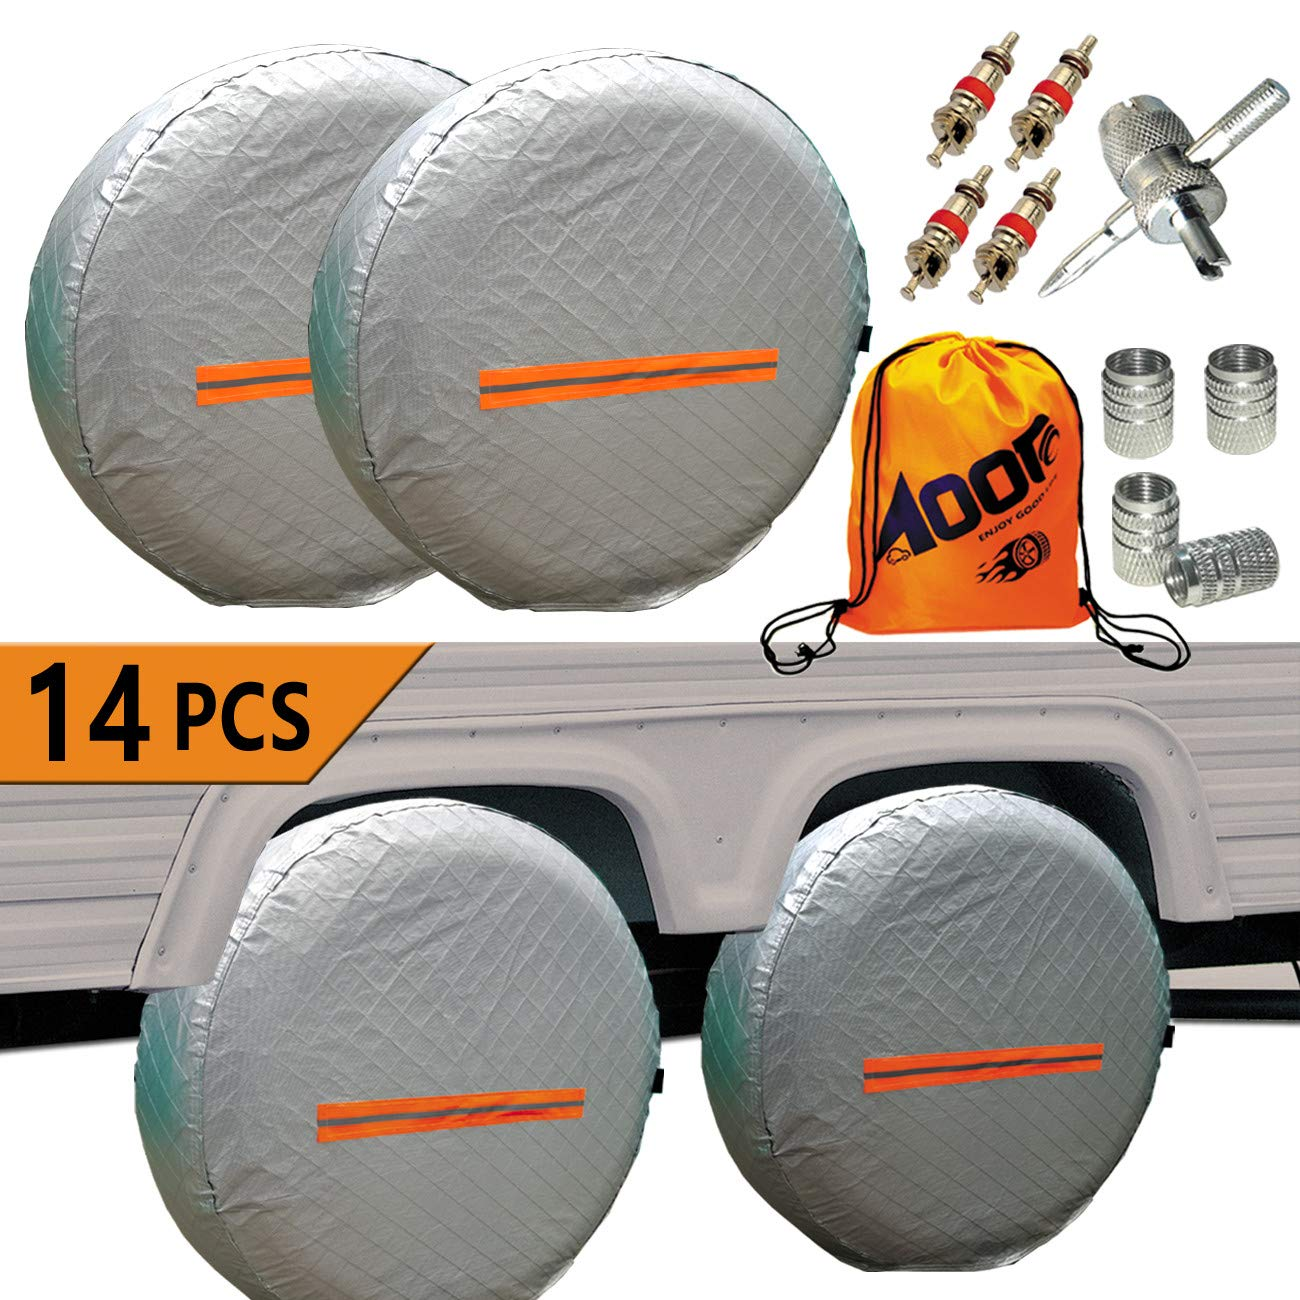 Tire Covers for RV Wheel -Trailers Tire Covers Set of 4 and Tire Tools 14 Sets for Motorhome Wheel Covers RVS,Boat,Waterproof Reflective Safety Tire Protectors Fits 26'' to 29'' Wheels (4PCS) by Aootf